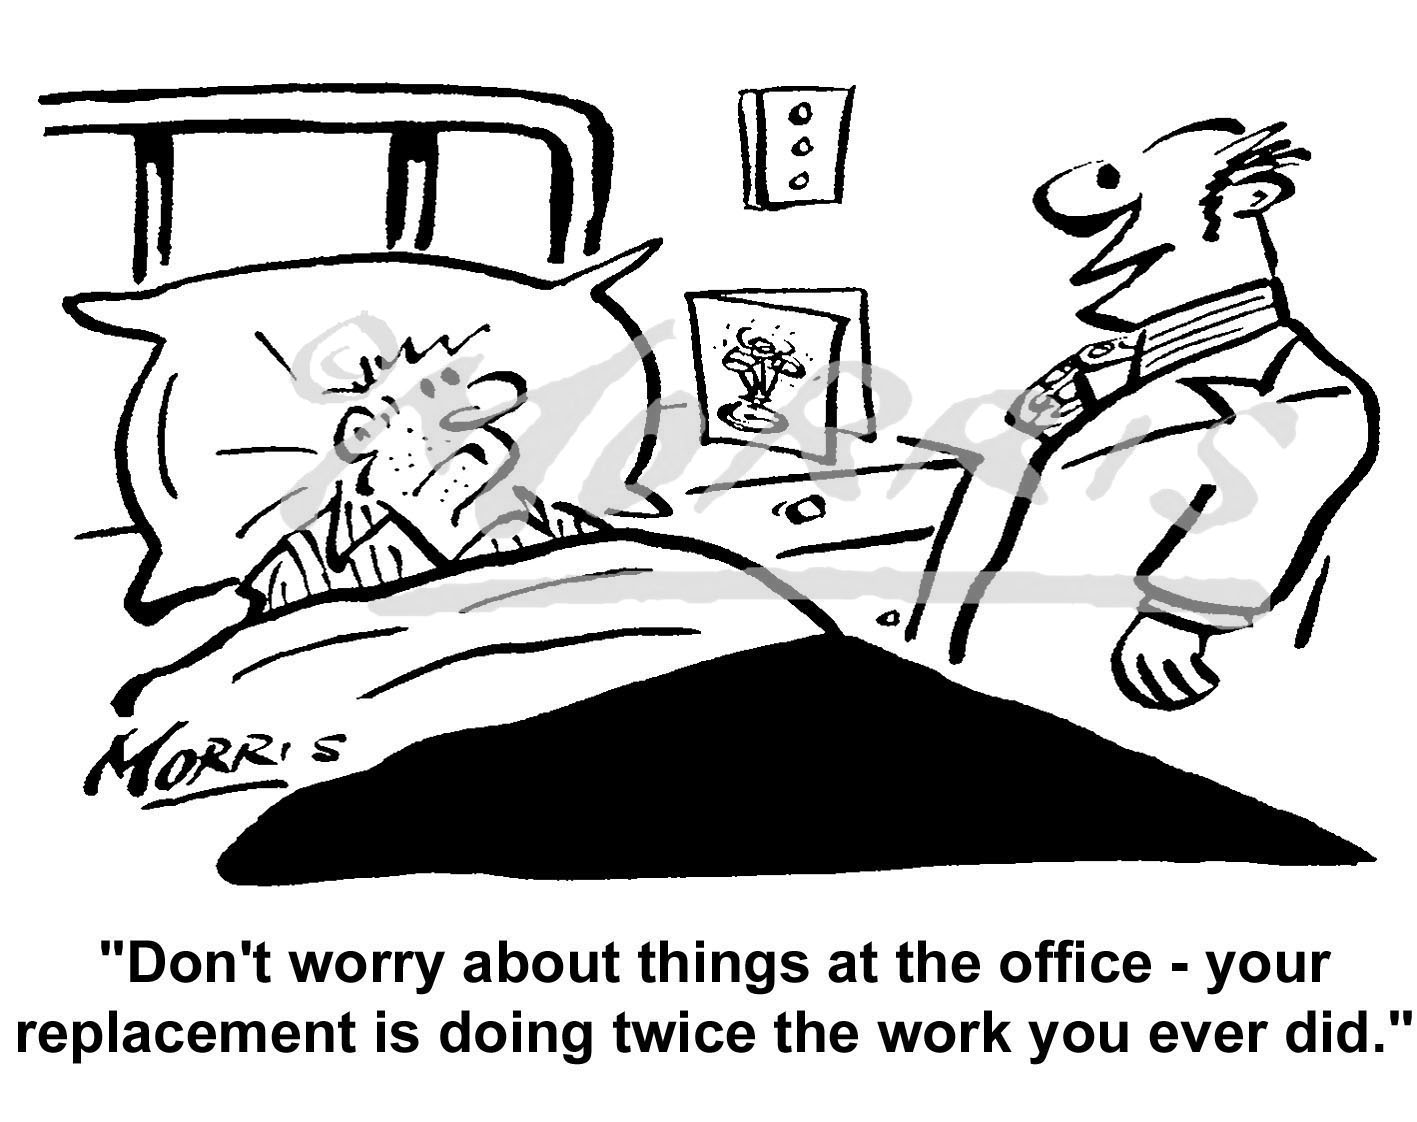 Office worker/staff workload cartoon – Ref: 5079bw